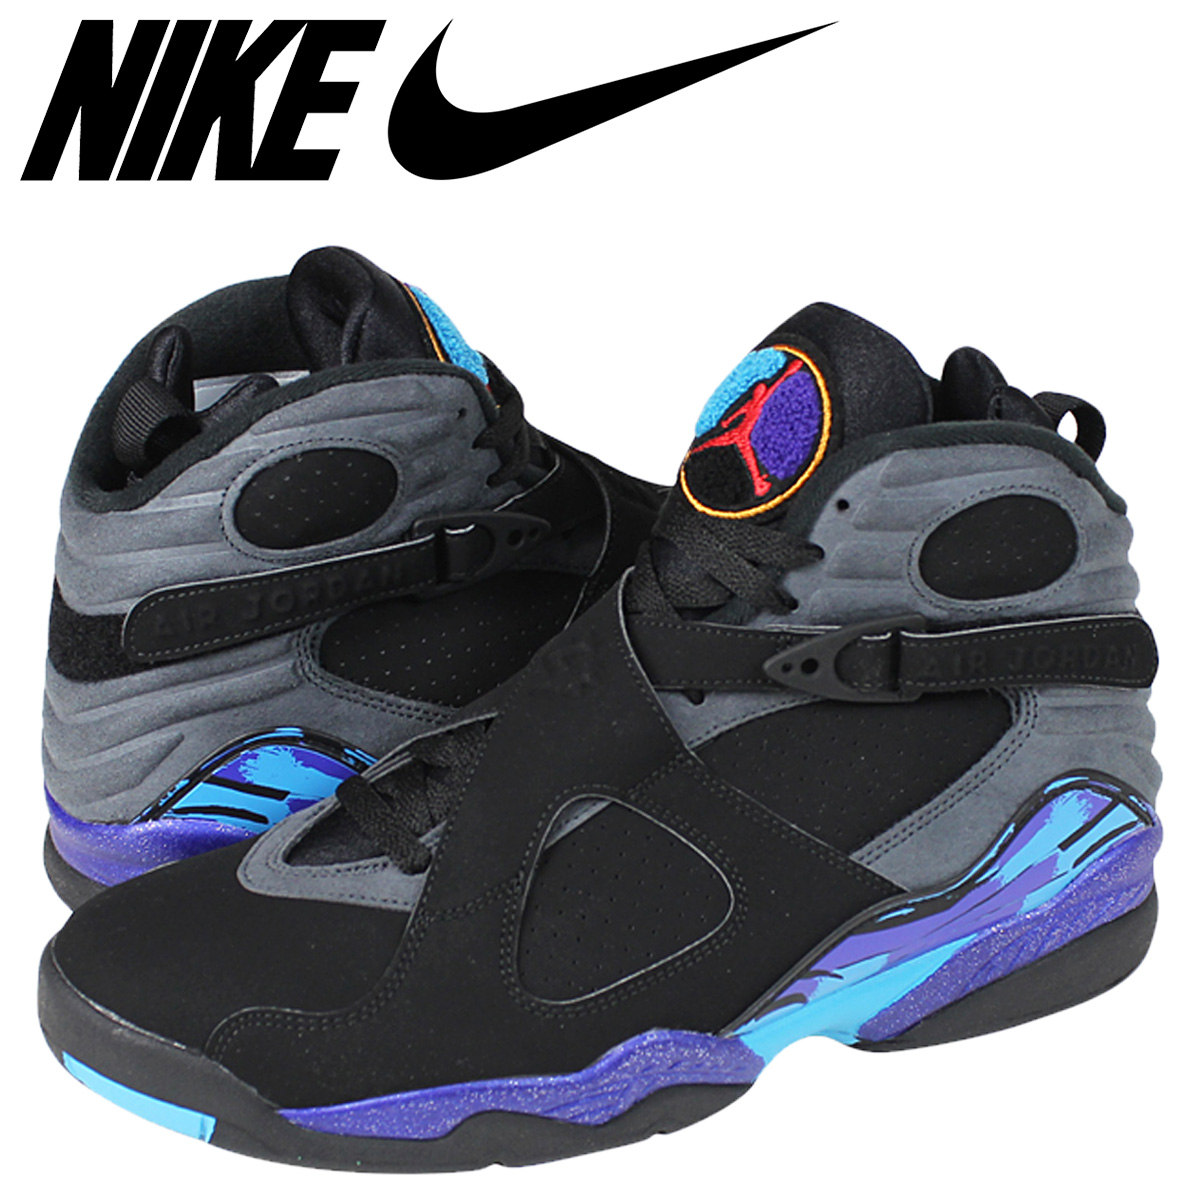 best loved 2db7d 372a7 Nike NIKE Air Jordan sneakers AIR JORDAN 8 RETRO AQUA Air Jordan retro 8  Aqua 305381 ...